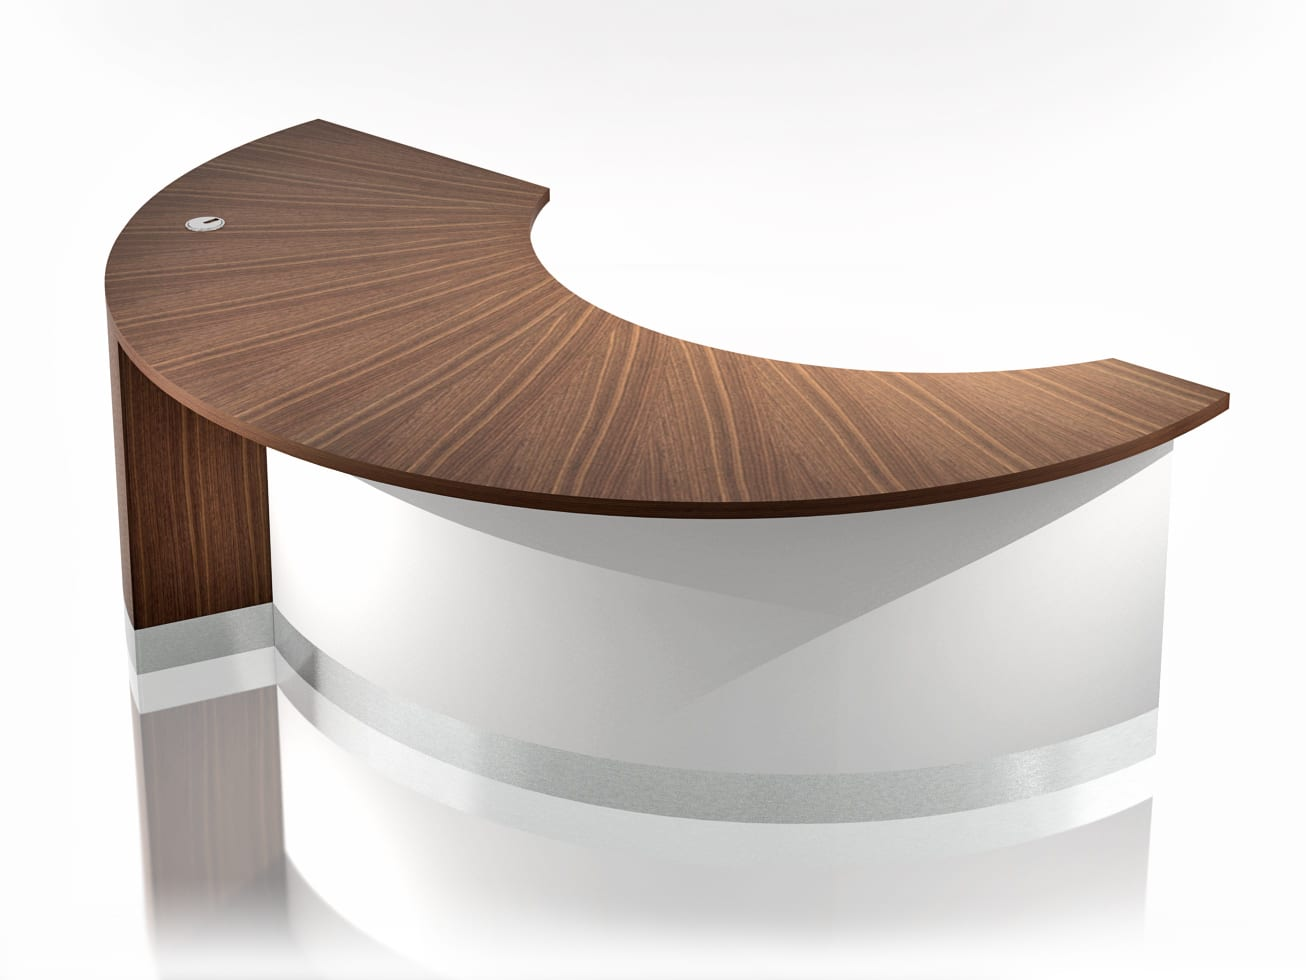 CR0020 – CRESCENT RECEPTION DESK standard – View 1